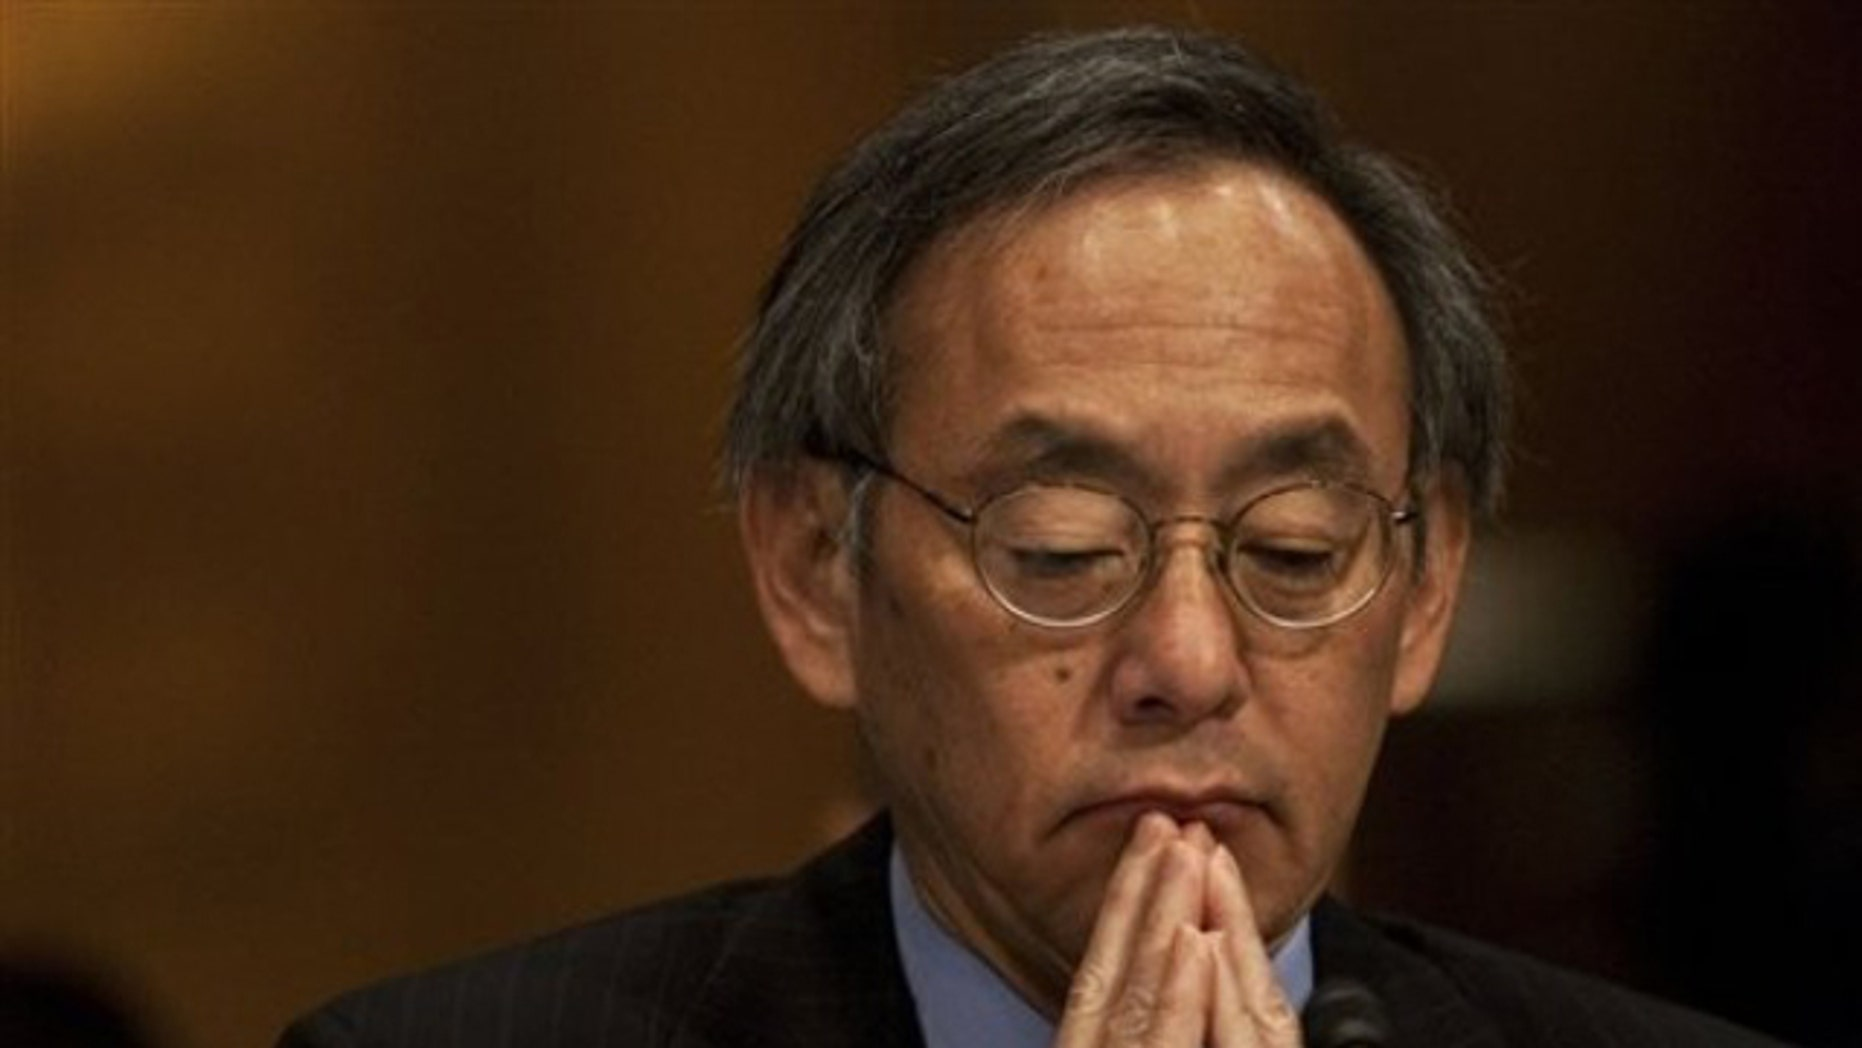 Energy Secretary Steven Chu pauses while testifying on Capitol Hill in Washington, Thursday, June 17, 2010. (AP)